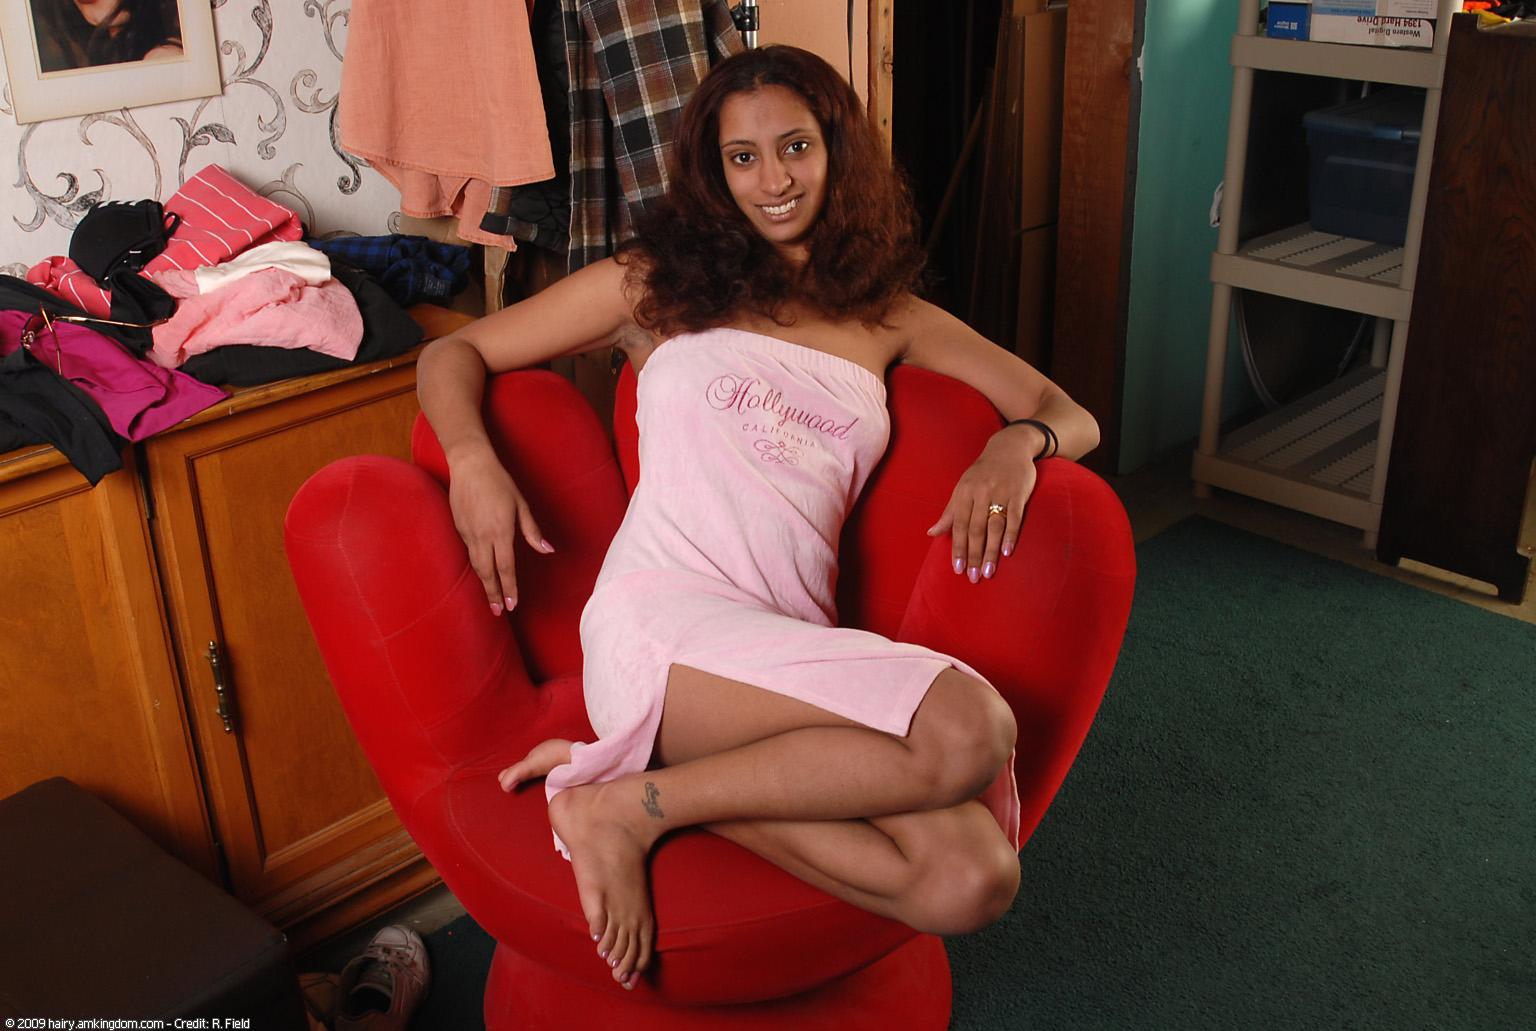 Jhazira minxxx indian size feet